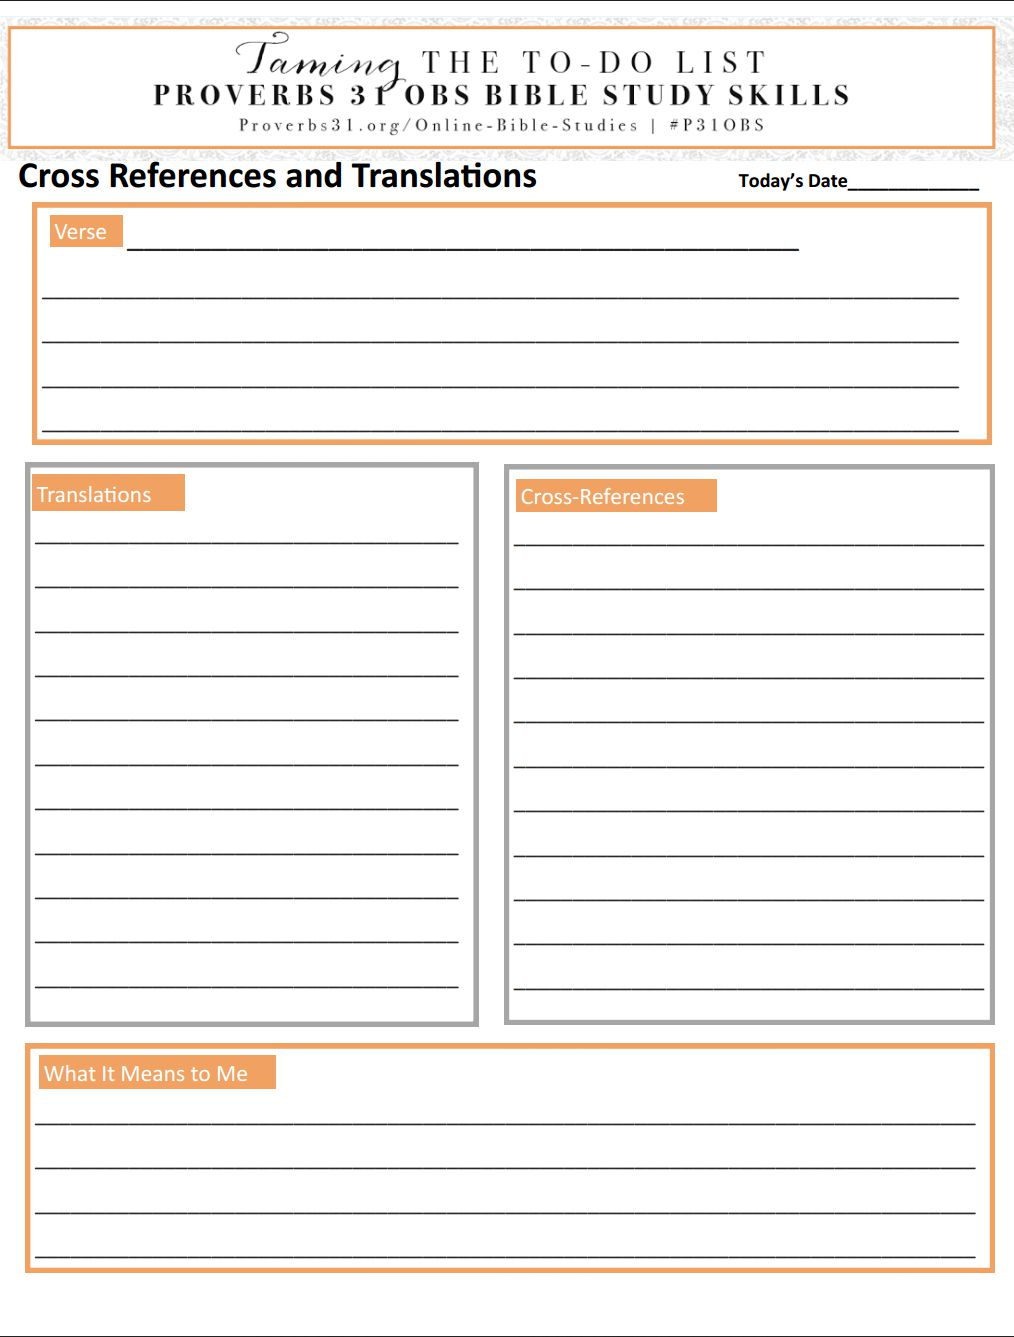 Worksheets Inductive Bible Study Worksheet bible study skills translations and cross references vida crista tameyourlist proverbs 31 online week 3 skill translations